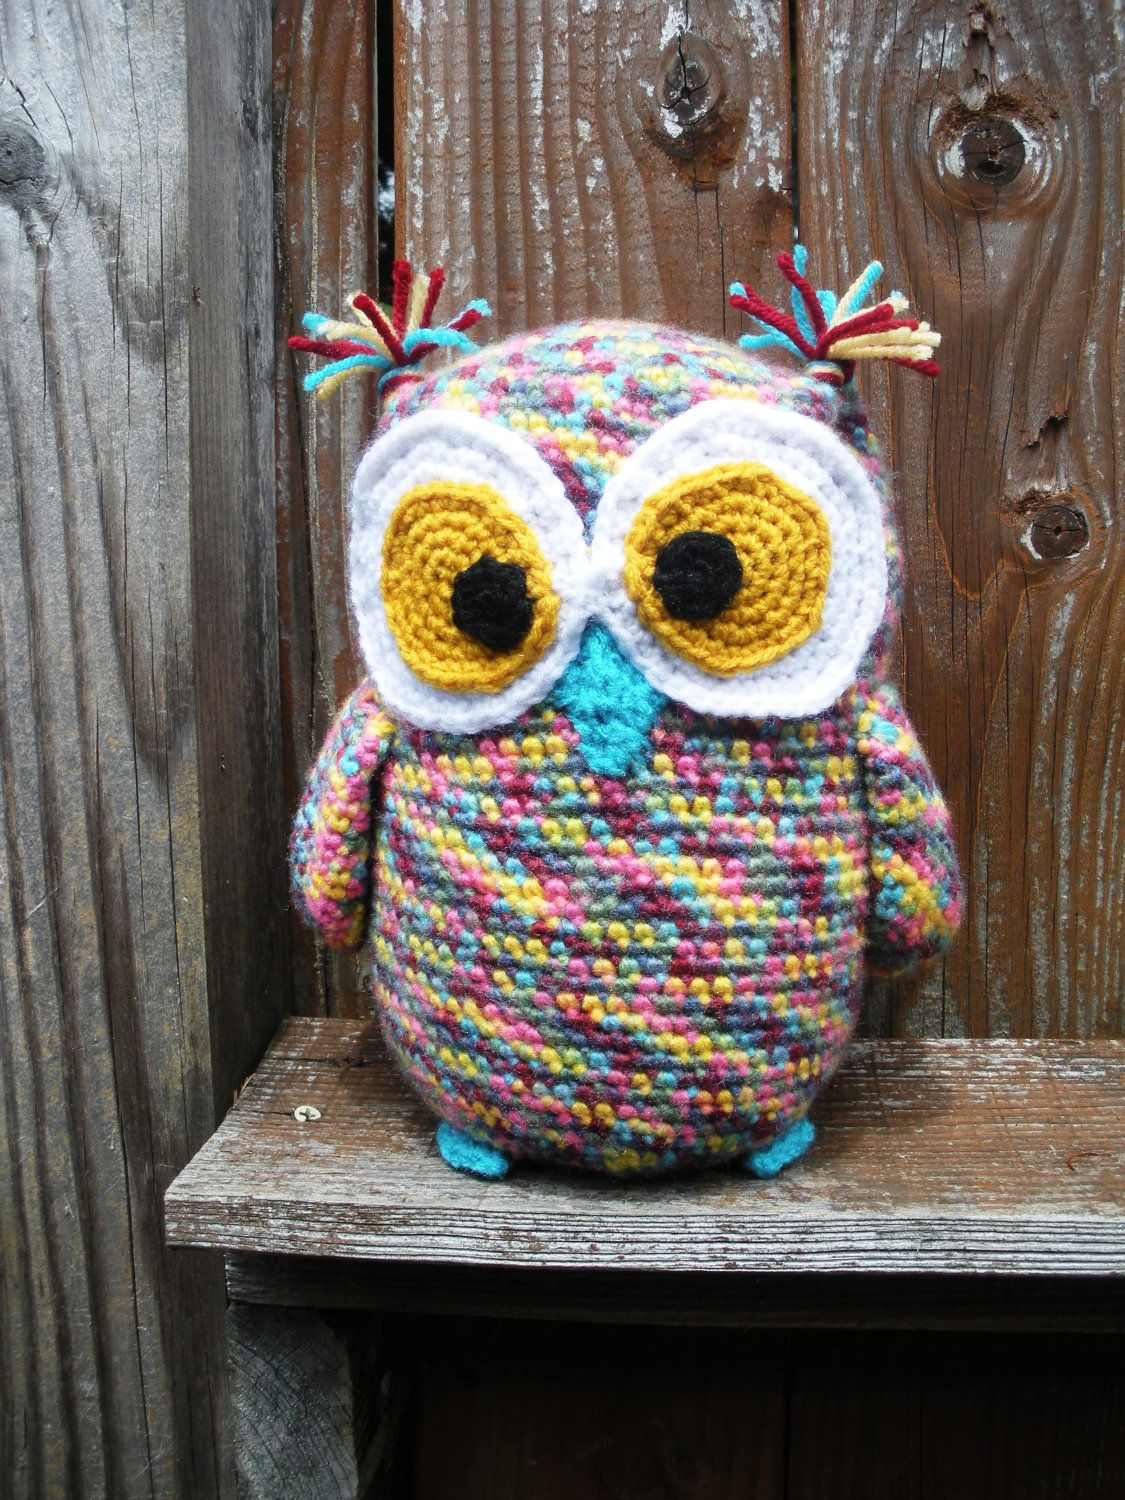 Stuff Owl Crochet Amigurumi Owl Softie Crafts Crochet Pinterest